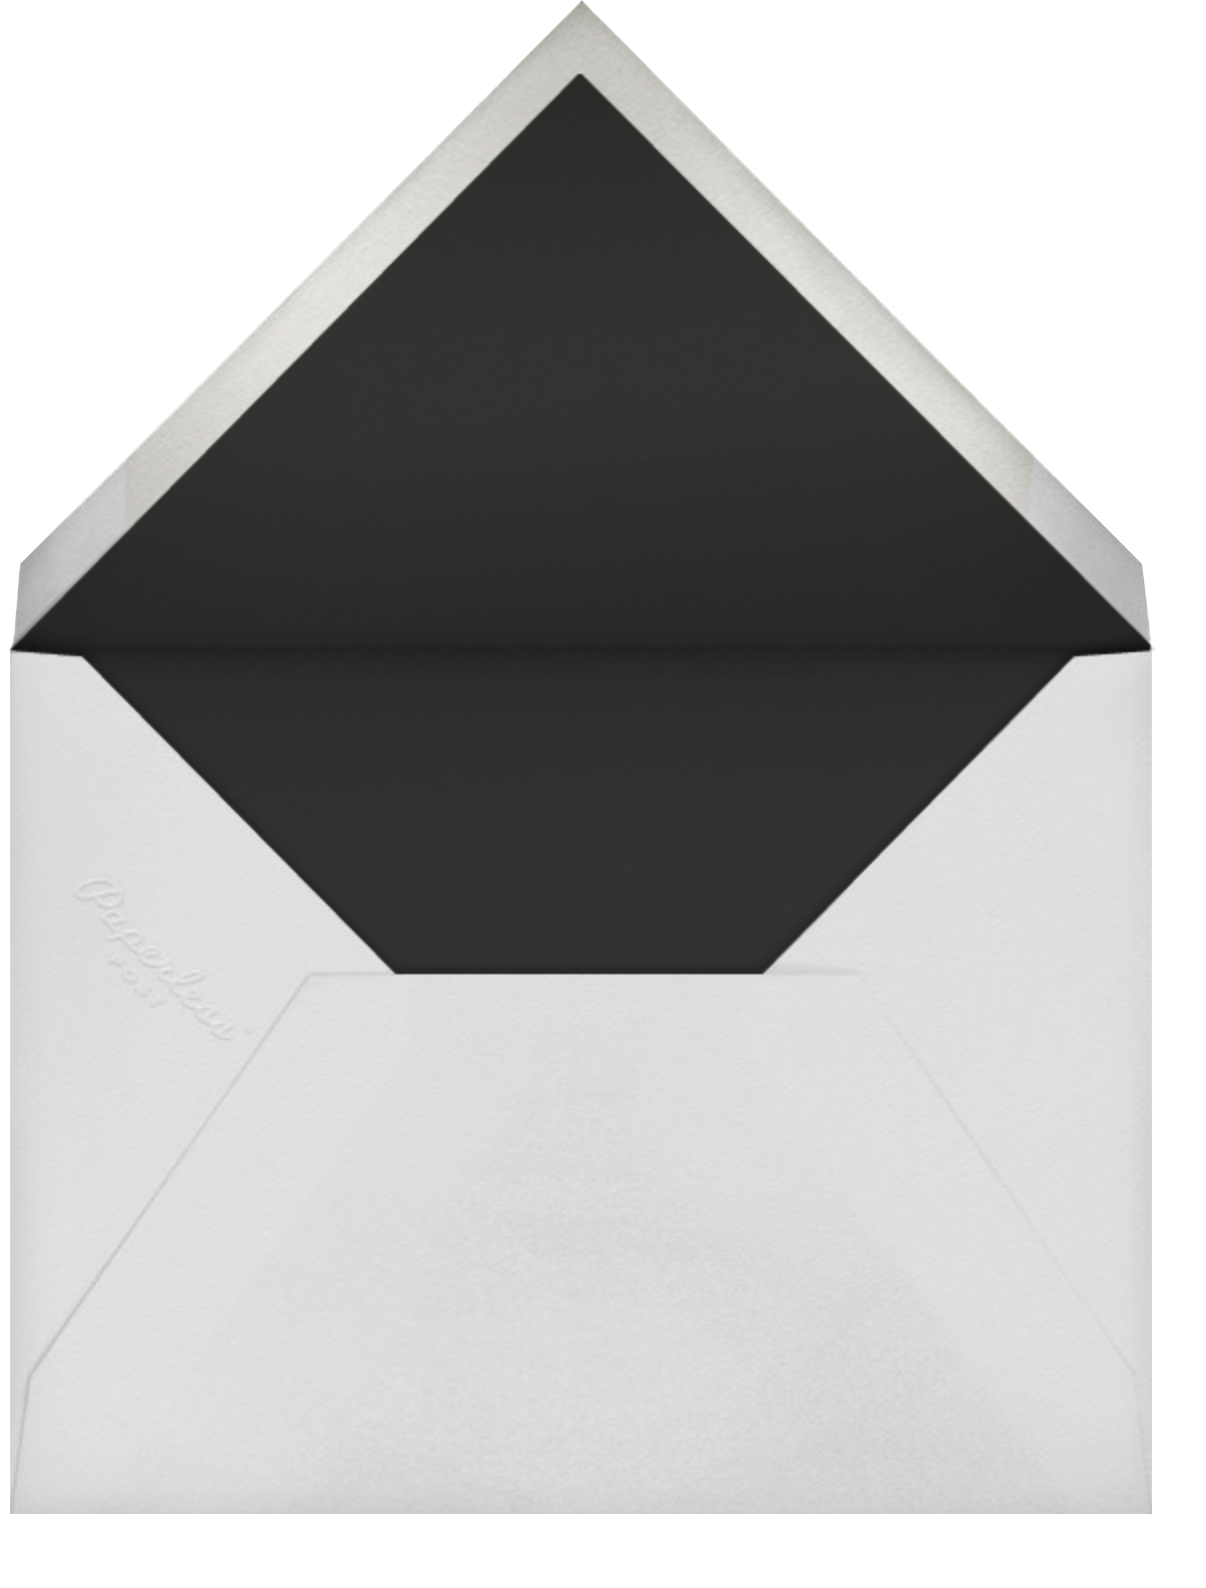 Tudor I - Red - Paperless Post - null - envelope back